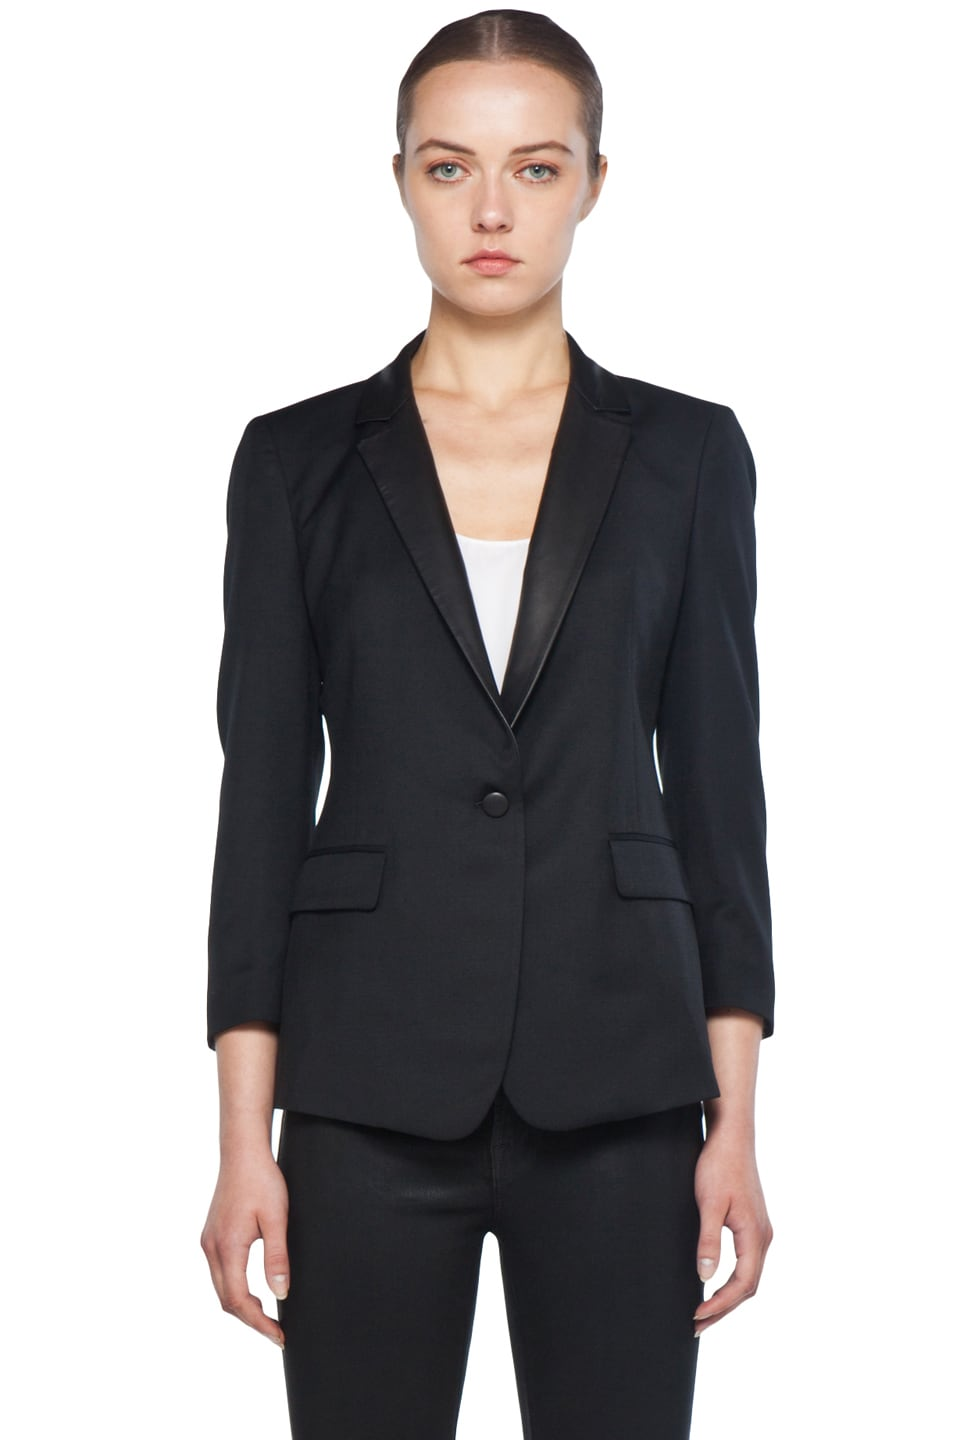 Image 2 of Boy Rope Shoulder Jacket with Leather Lapels in Black